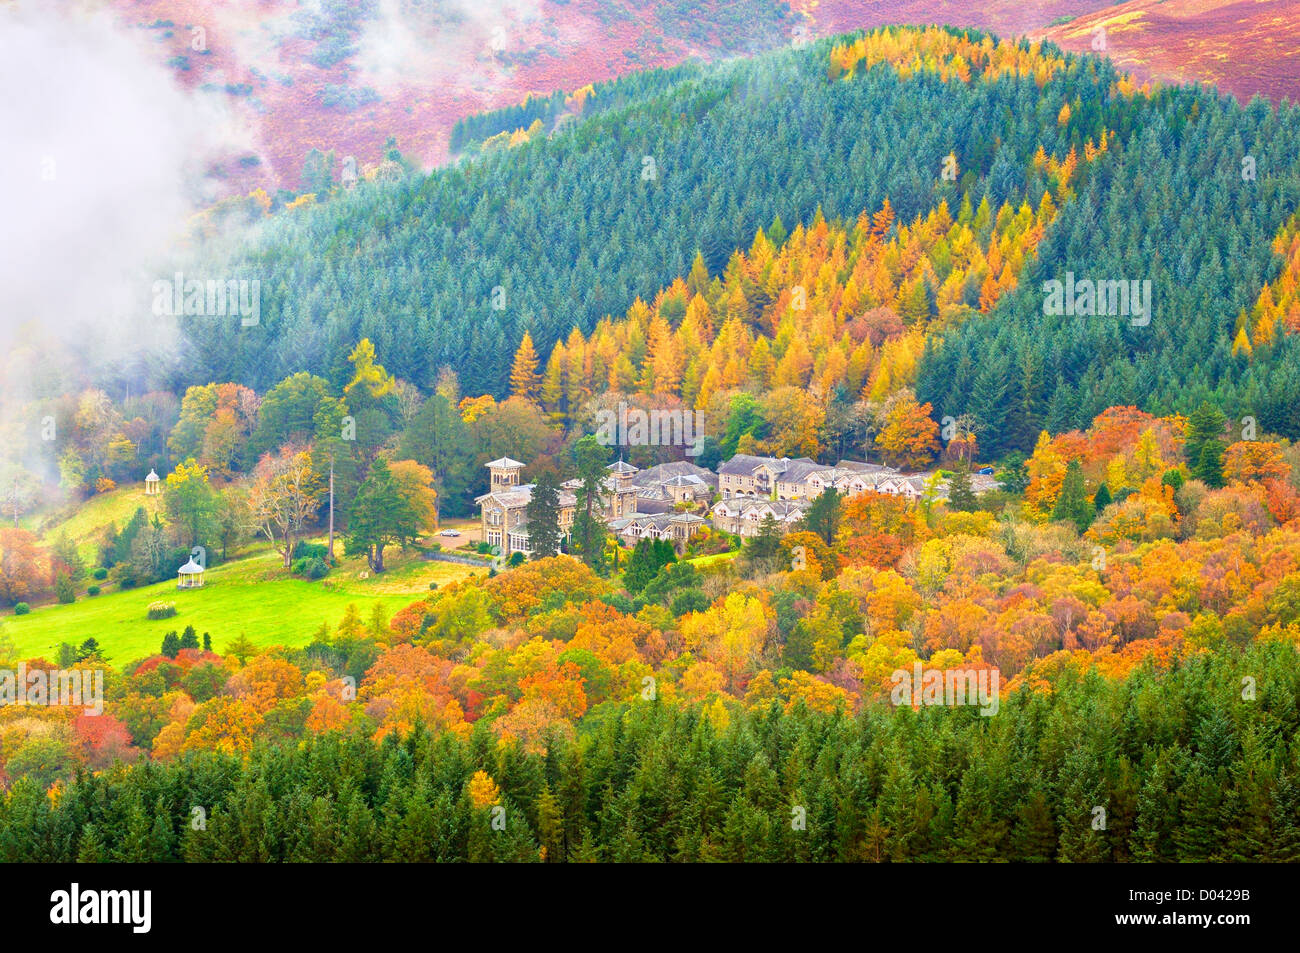 View from Latrigg of the Grade II-listed Underscar Manor in autumn, Keswick, Lake District, UK - Stock Image